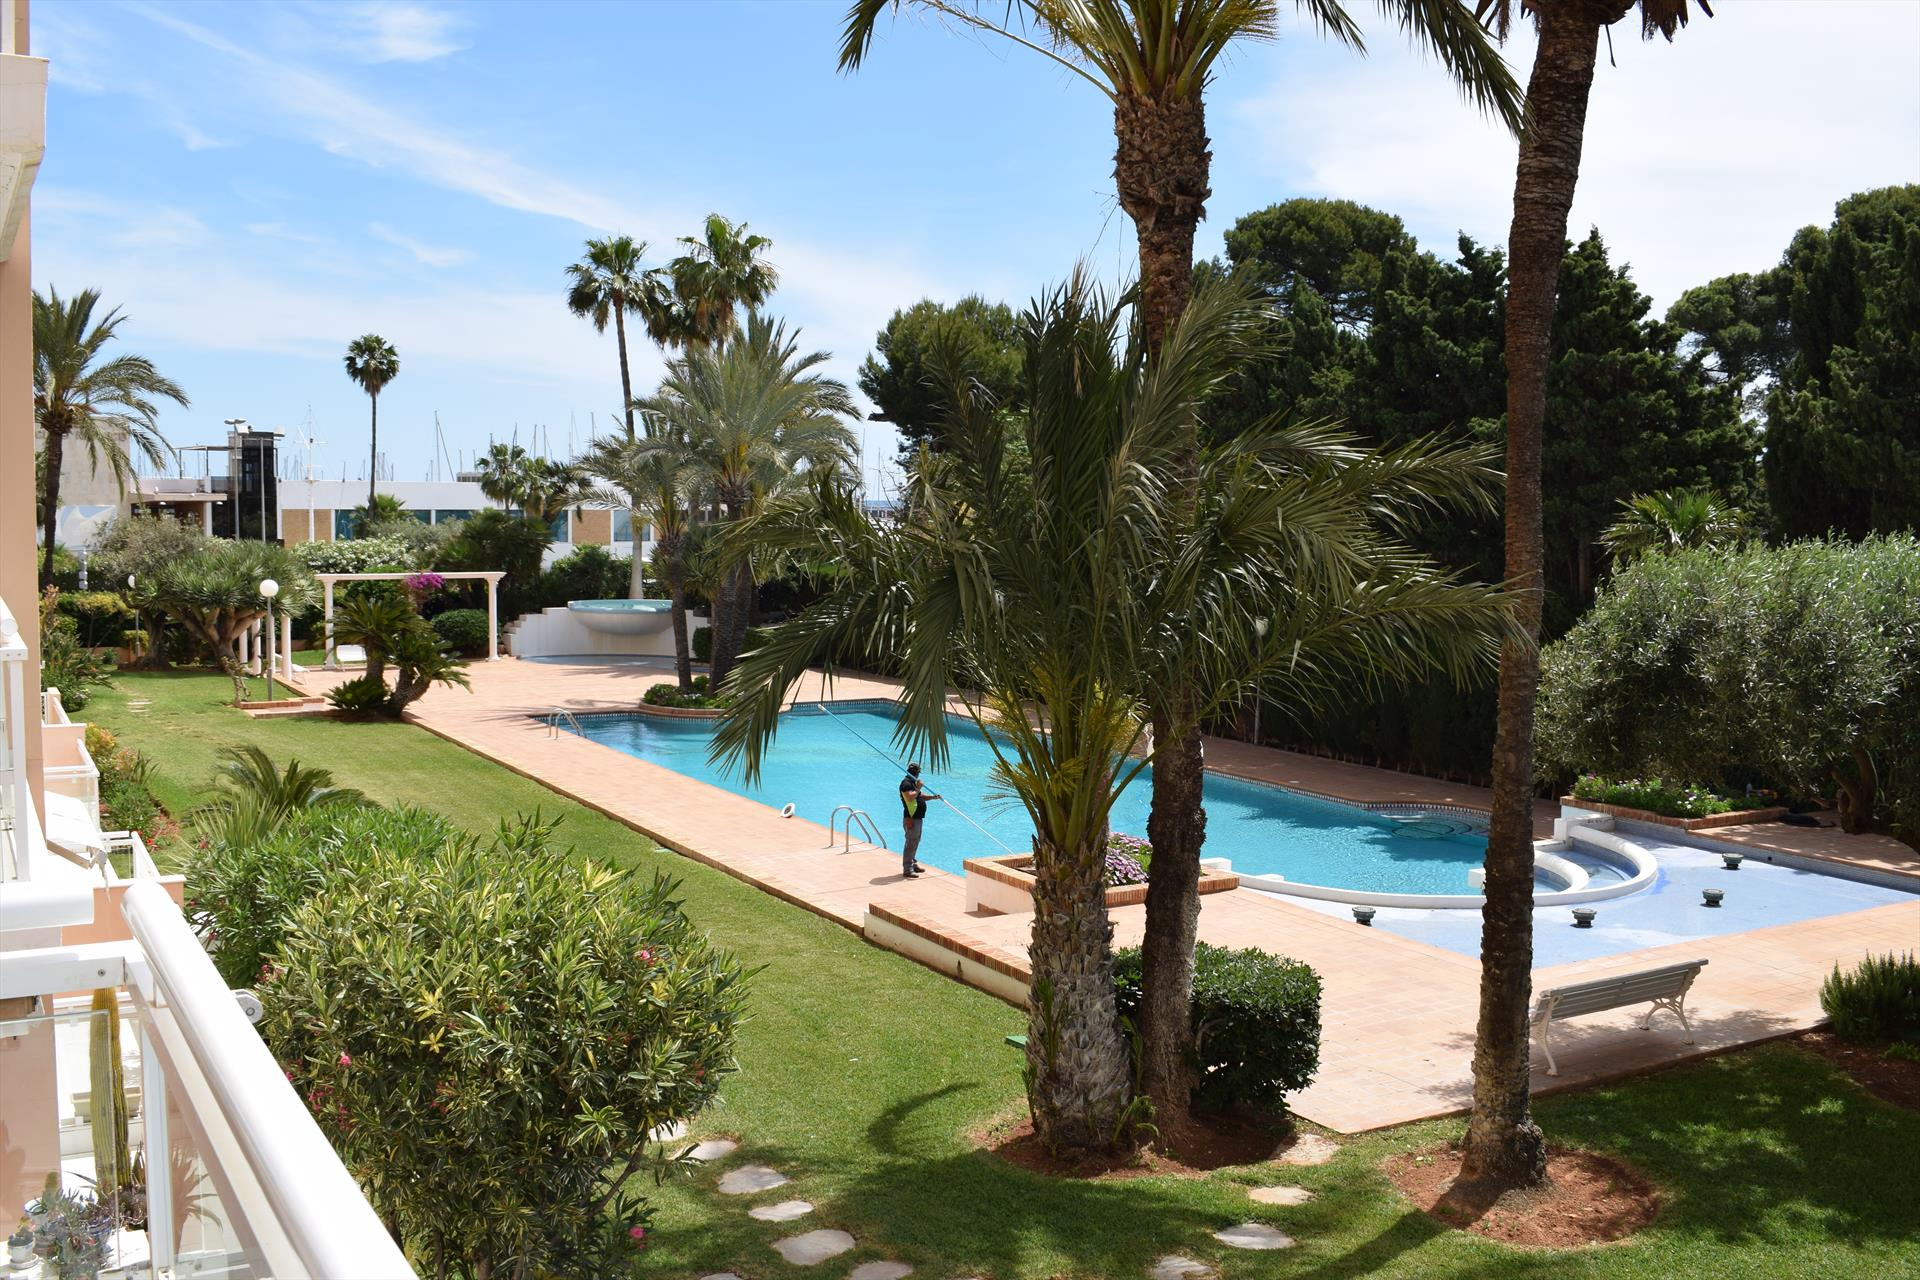 AP2236 Cerca del Club Náutico con Piscina, Wonderful and comfortable apartment in Denia, on the Costa Blanca, Spain  with communal pool for 4 persons.....